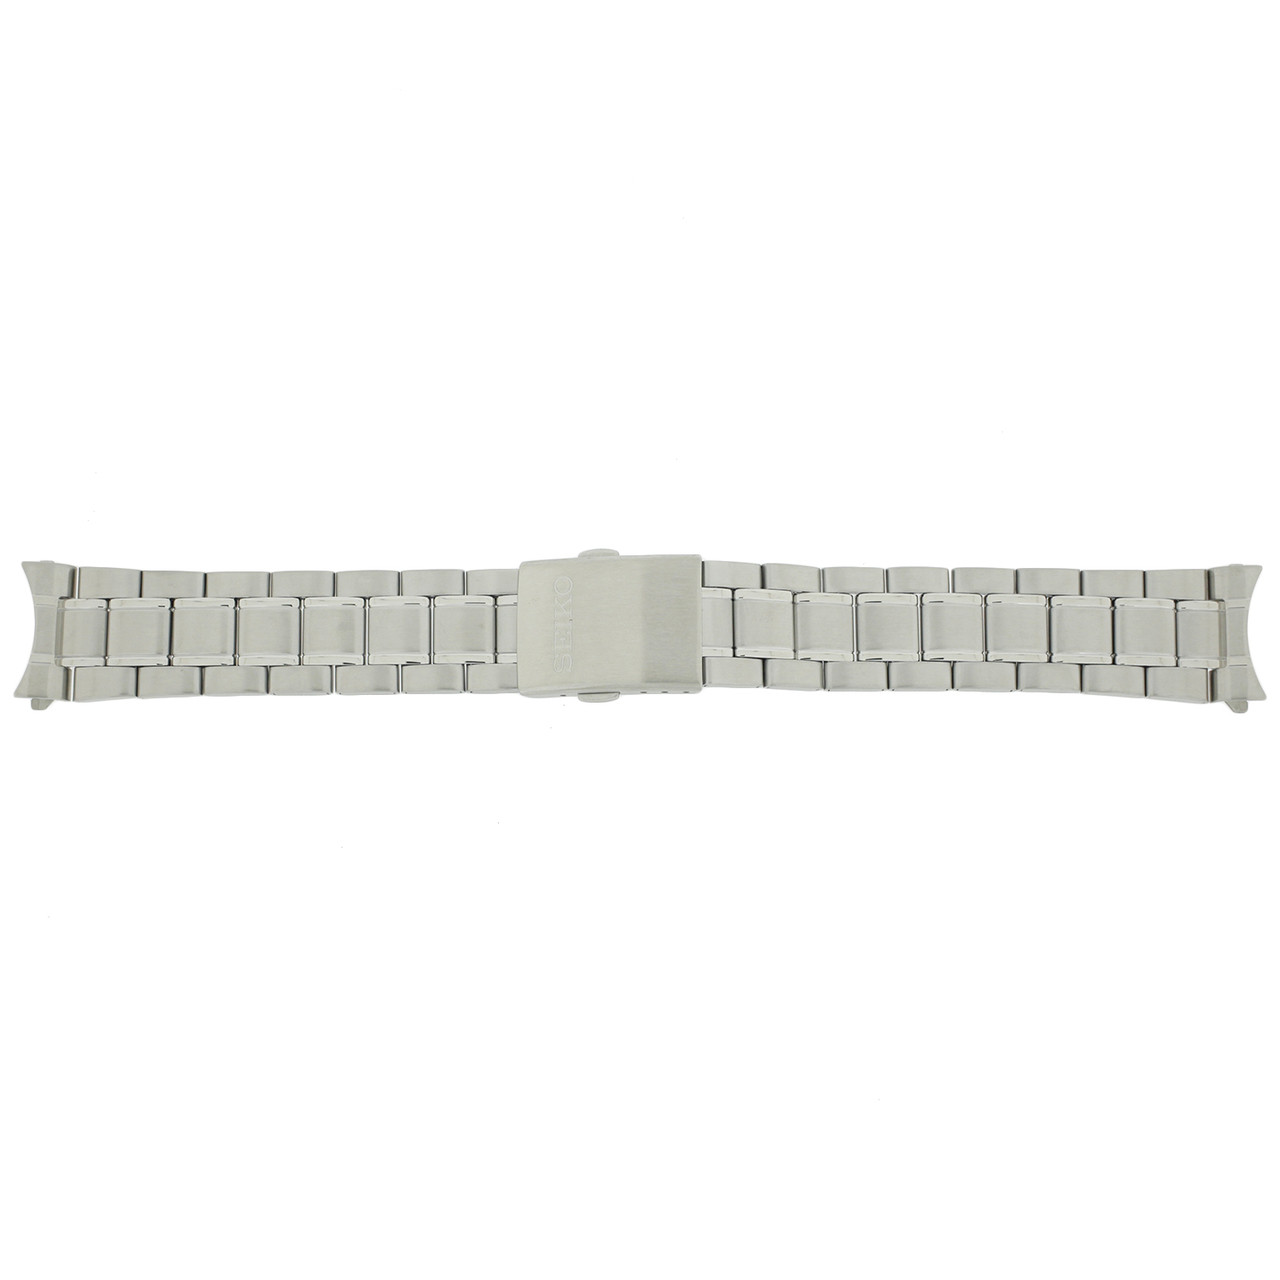 Seiko Stainless Steel Watch Band in 20mm - Main